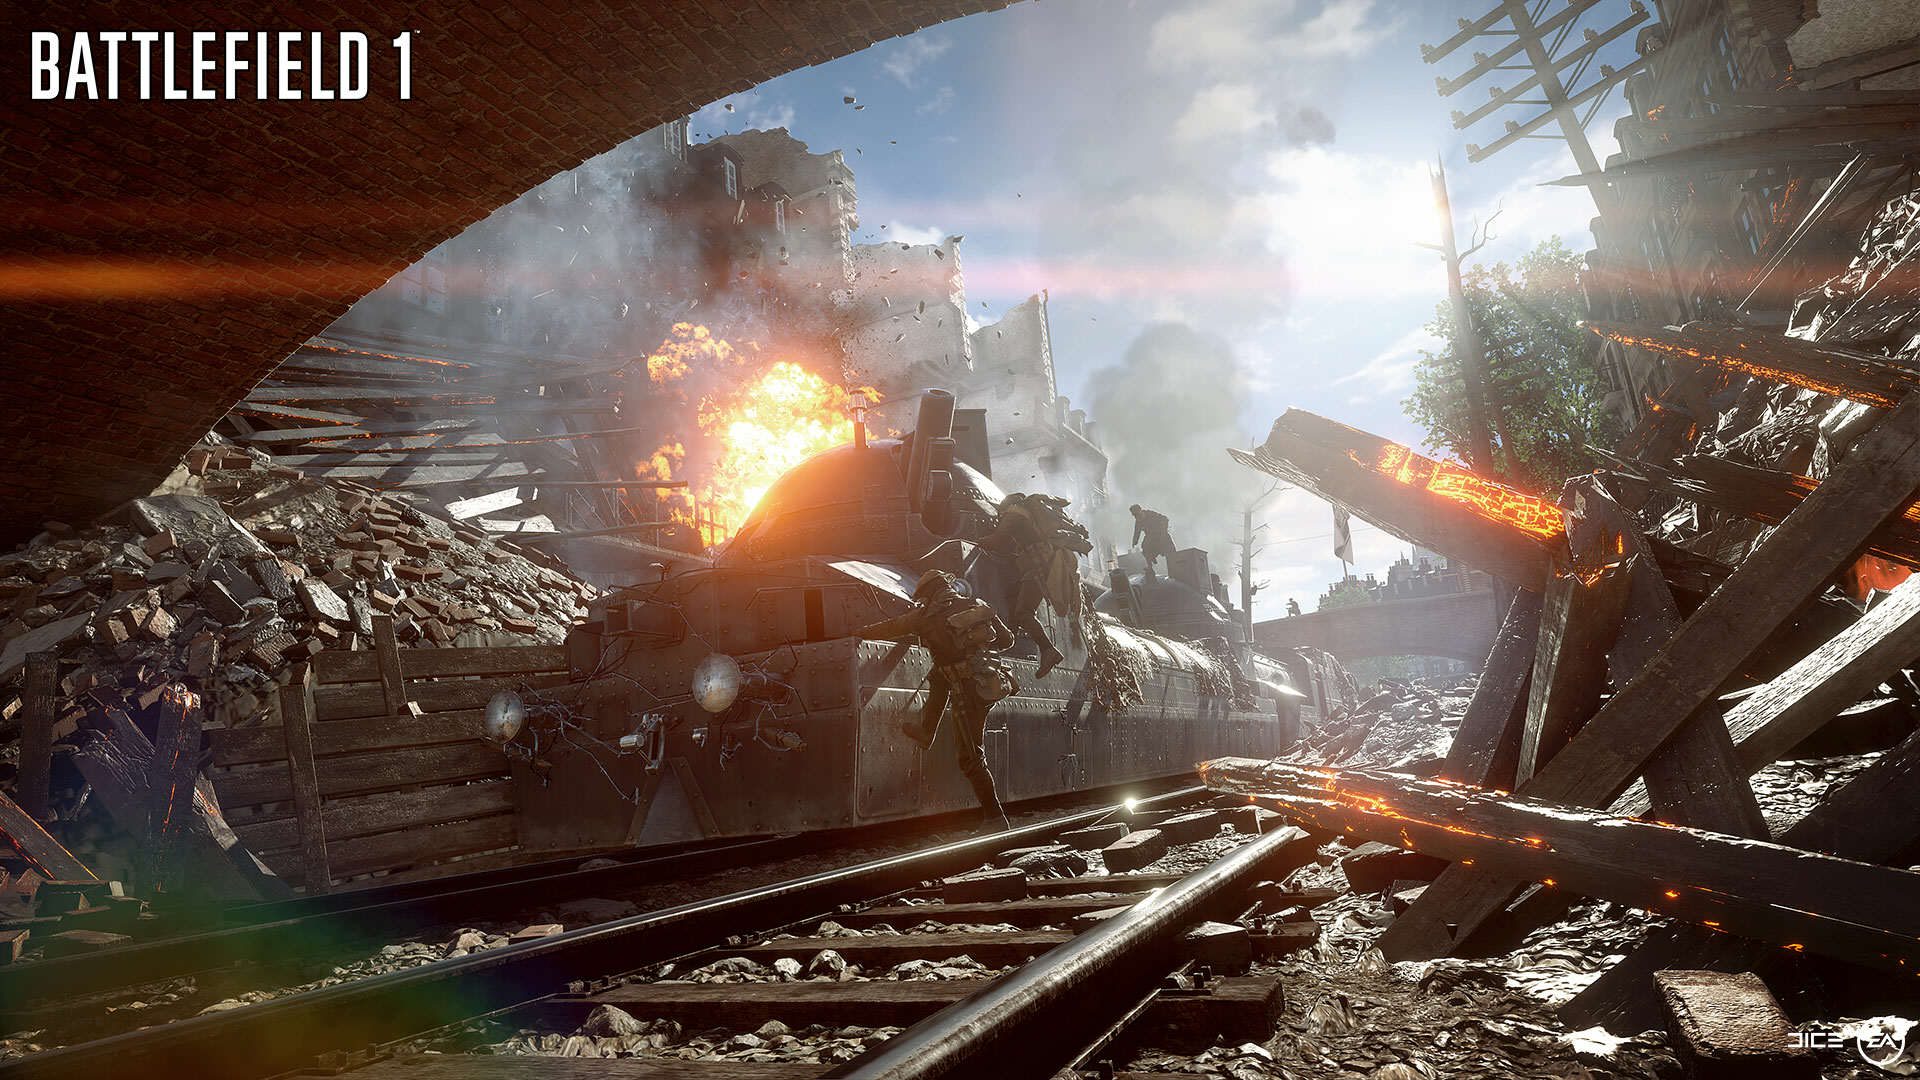 Battlefield 1 Gets Epic New Trailer And Gameplay Features BF1 EA PLAY 04 BEHEMOTH TRAIN WM